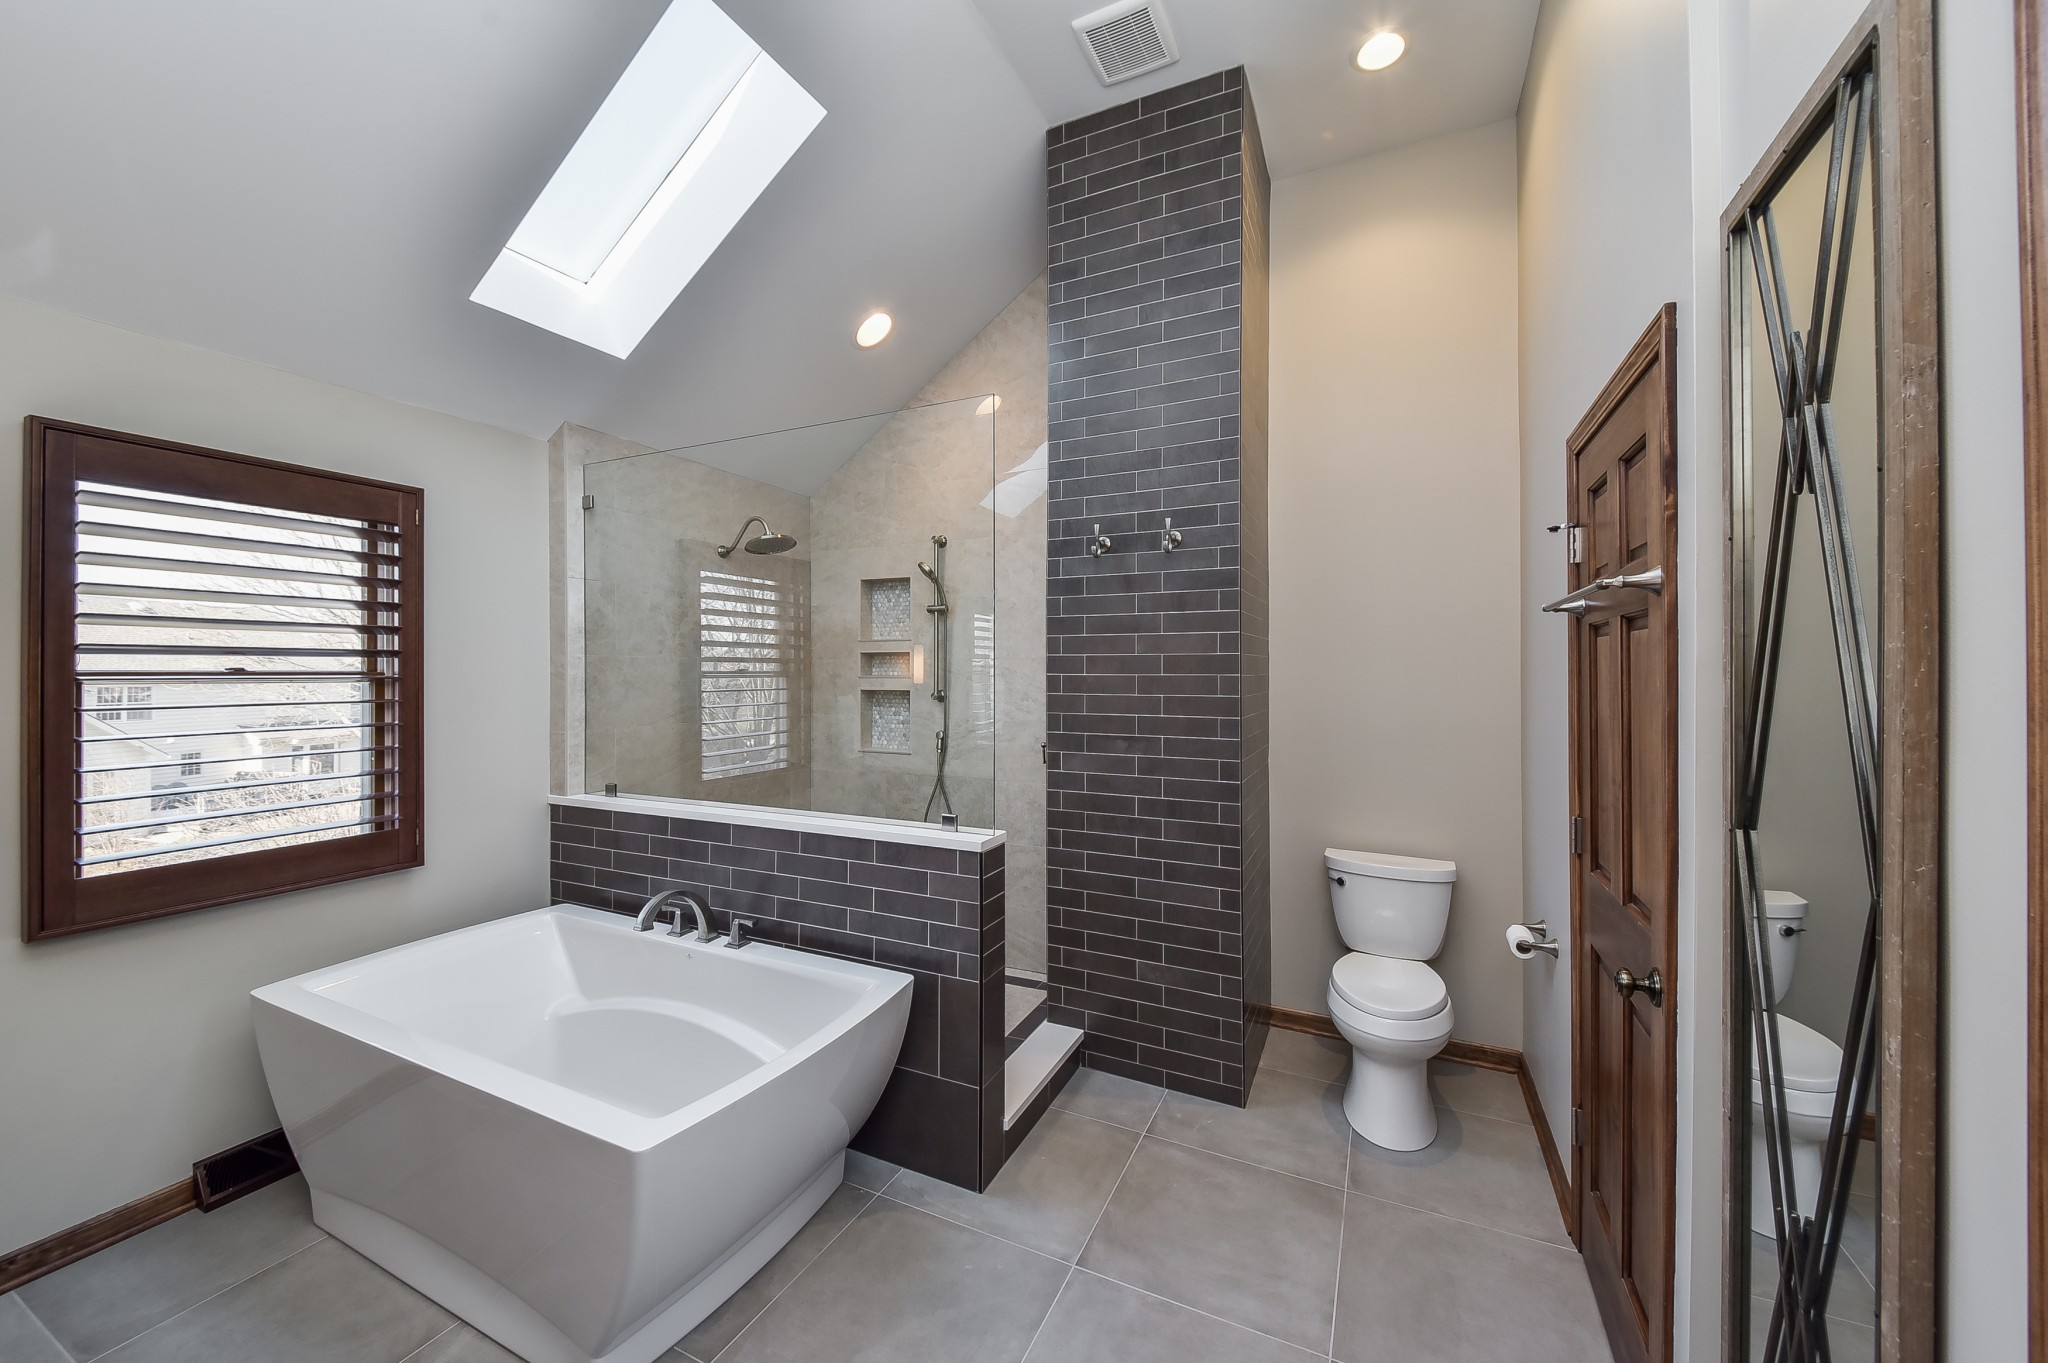 mesmerizing white bathroom design | 14 Bathroom Design Trends For 2020 | Home Remodeling ...